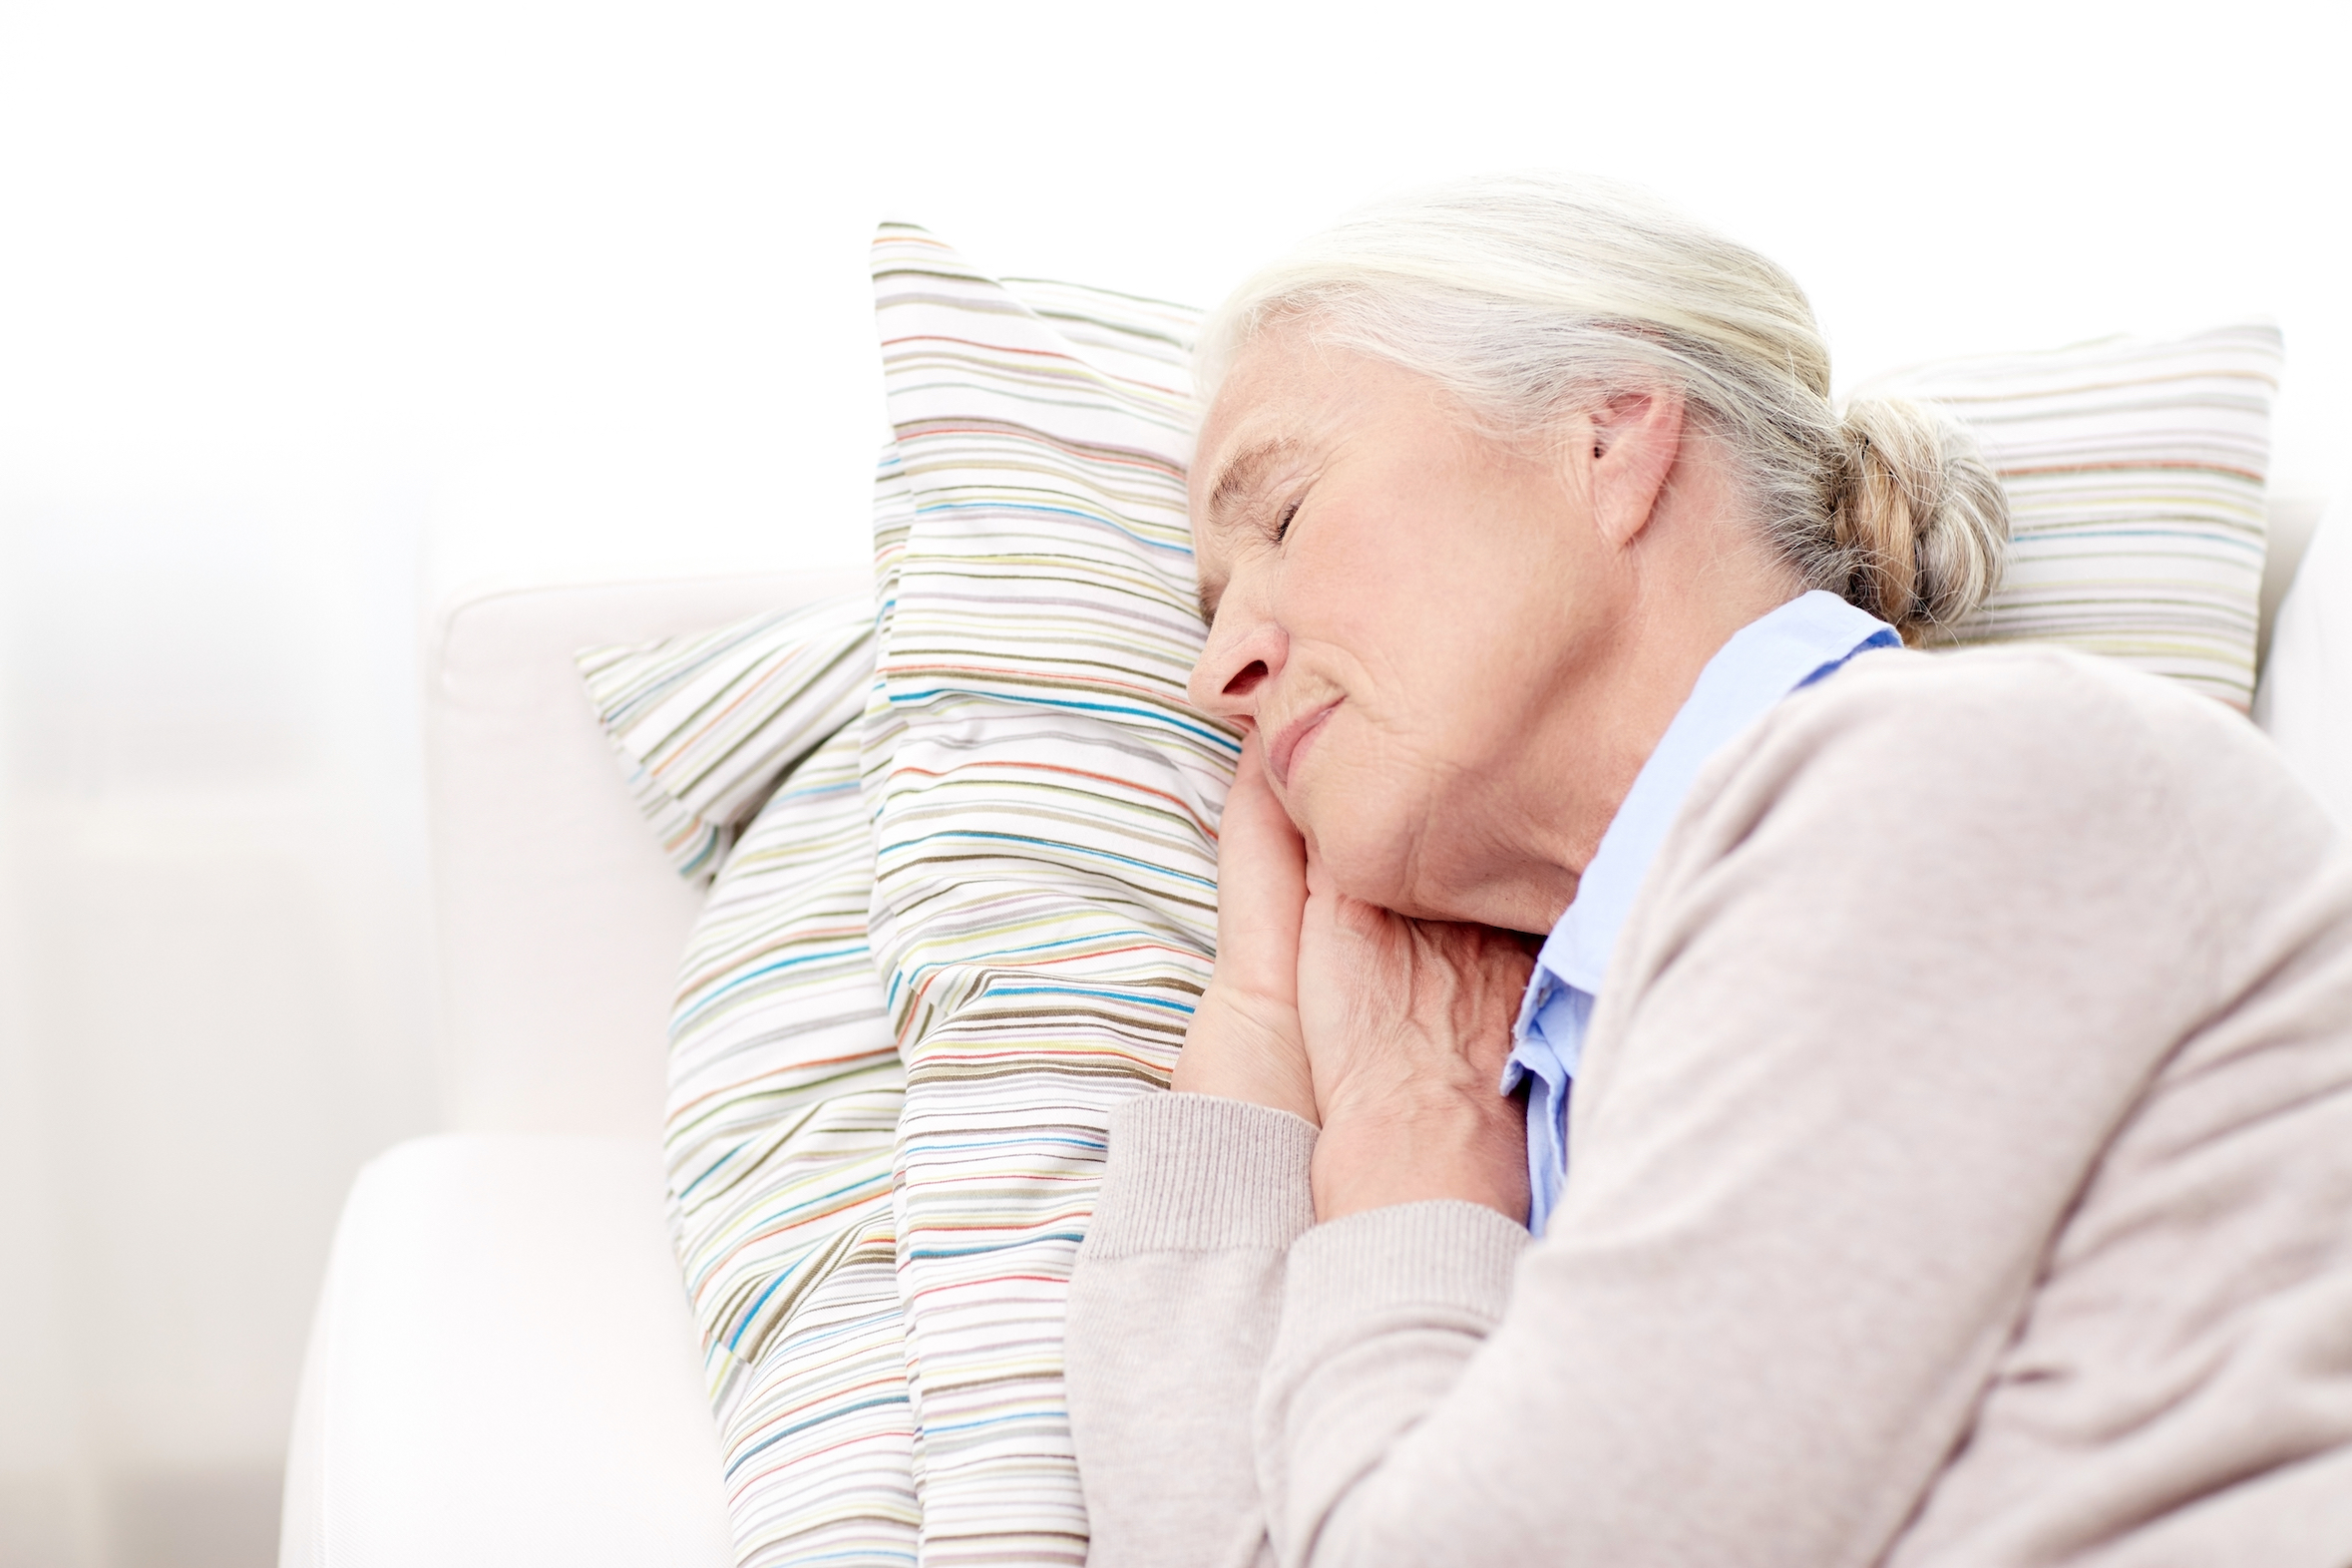 A new study has found that the lack of quality sleep experienced by the elderly can actually increase their risk of memory loss and disorders.